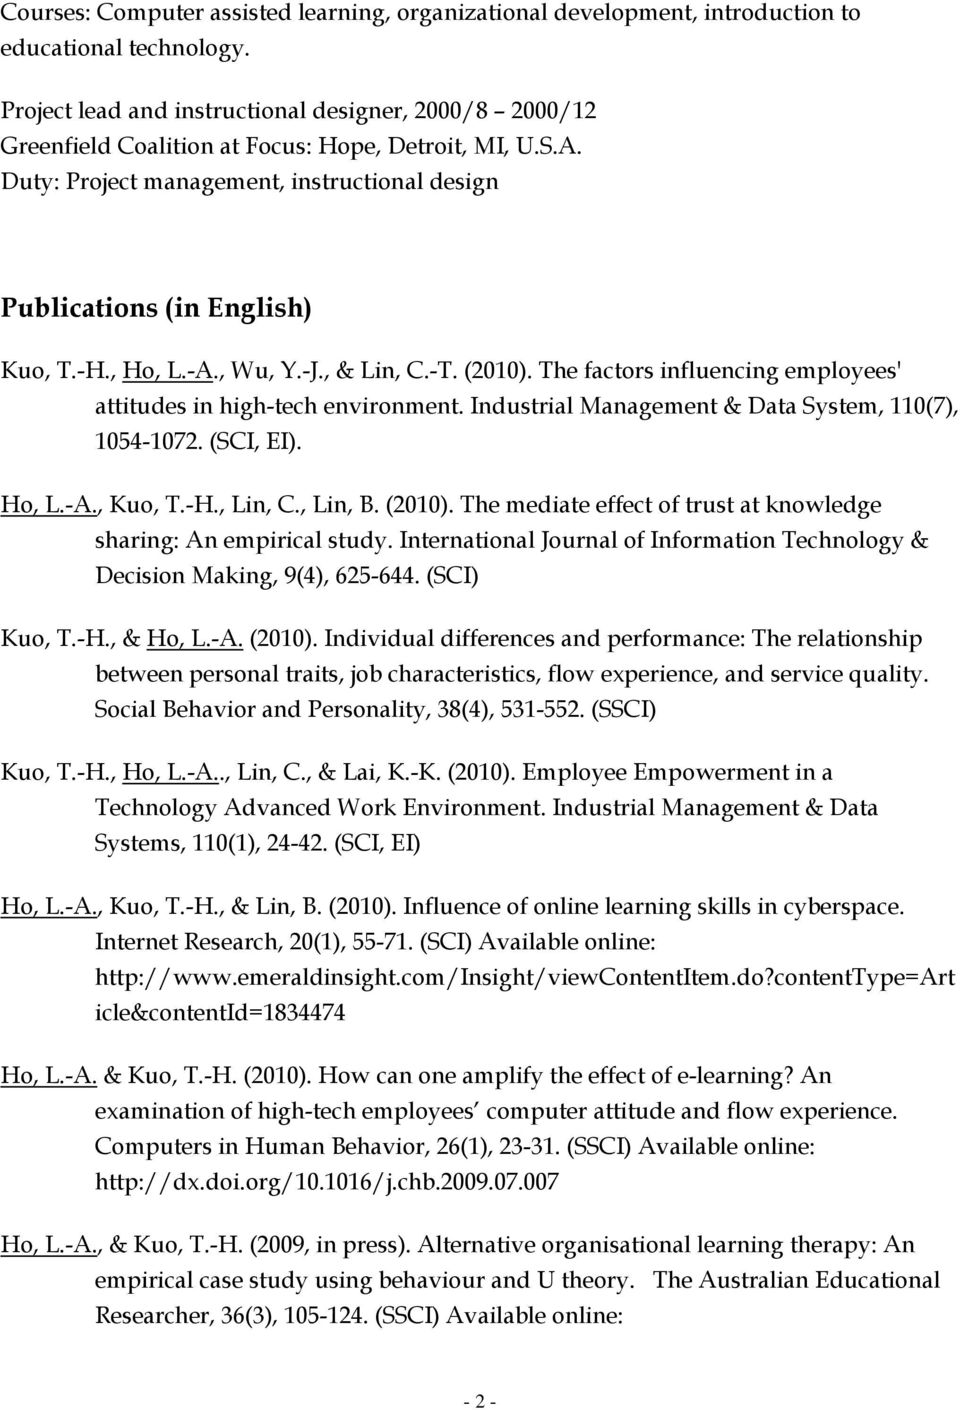 , Ho, L.-A., Wu, Y.-J., & Lin, C.-T. (2010). The factors influencing employees' attitudes in high-tech environment. Industrial Management & Data System, 110(7), 1054-1072. (SCI, EI). Ho, L.-A., Kuo, T.